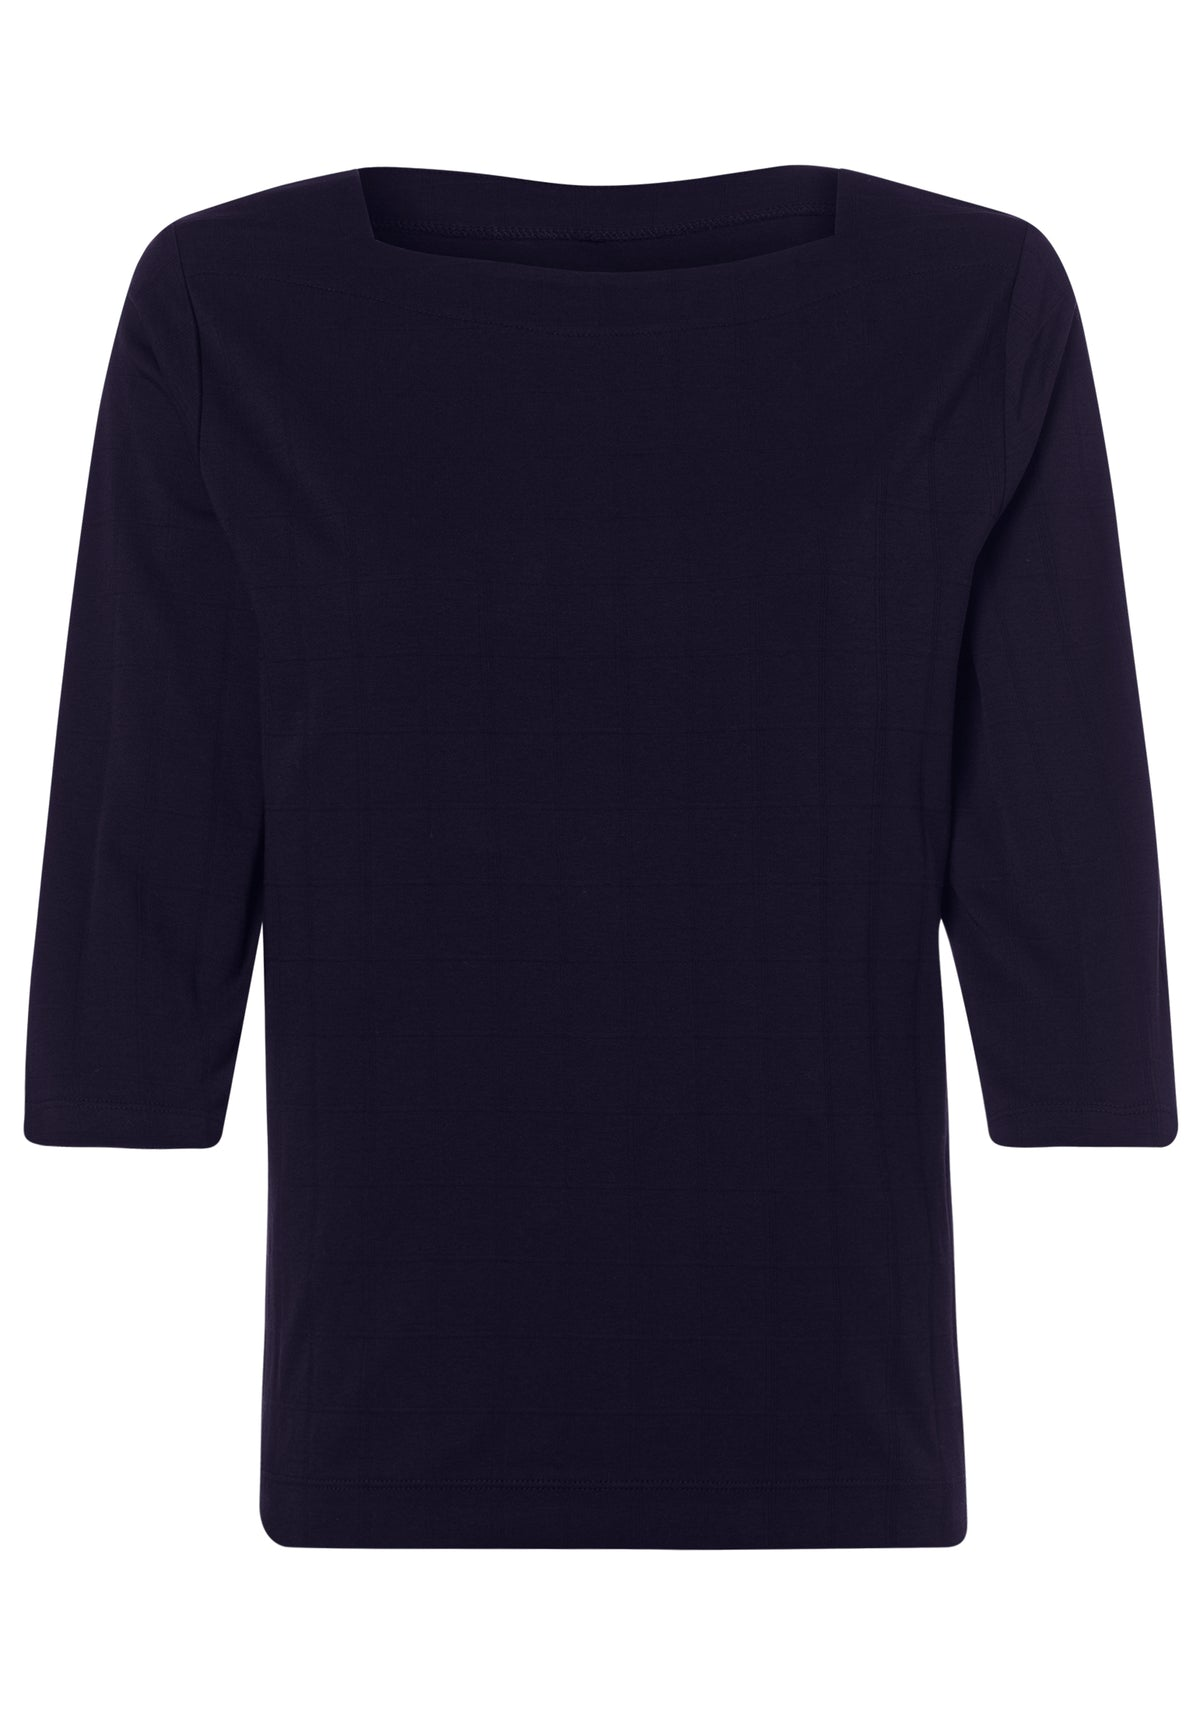 100% Cotton 3/4 Sleeve Square Neck T-Shirt